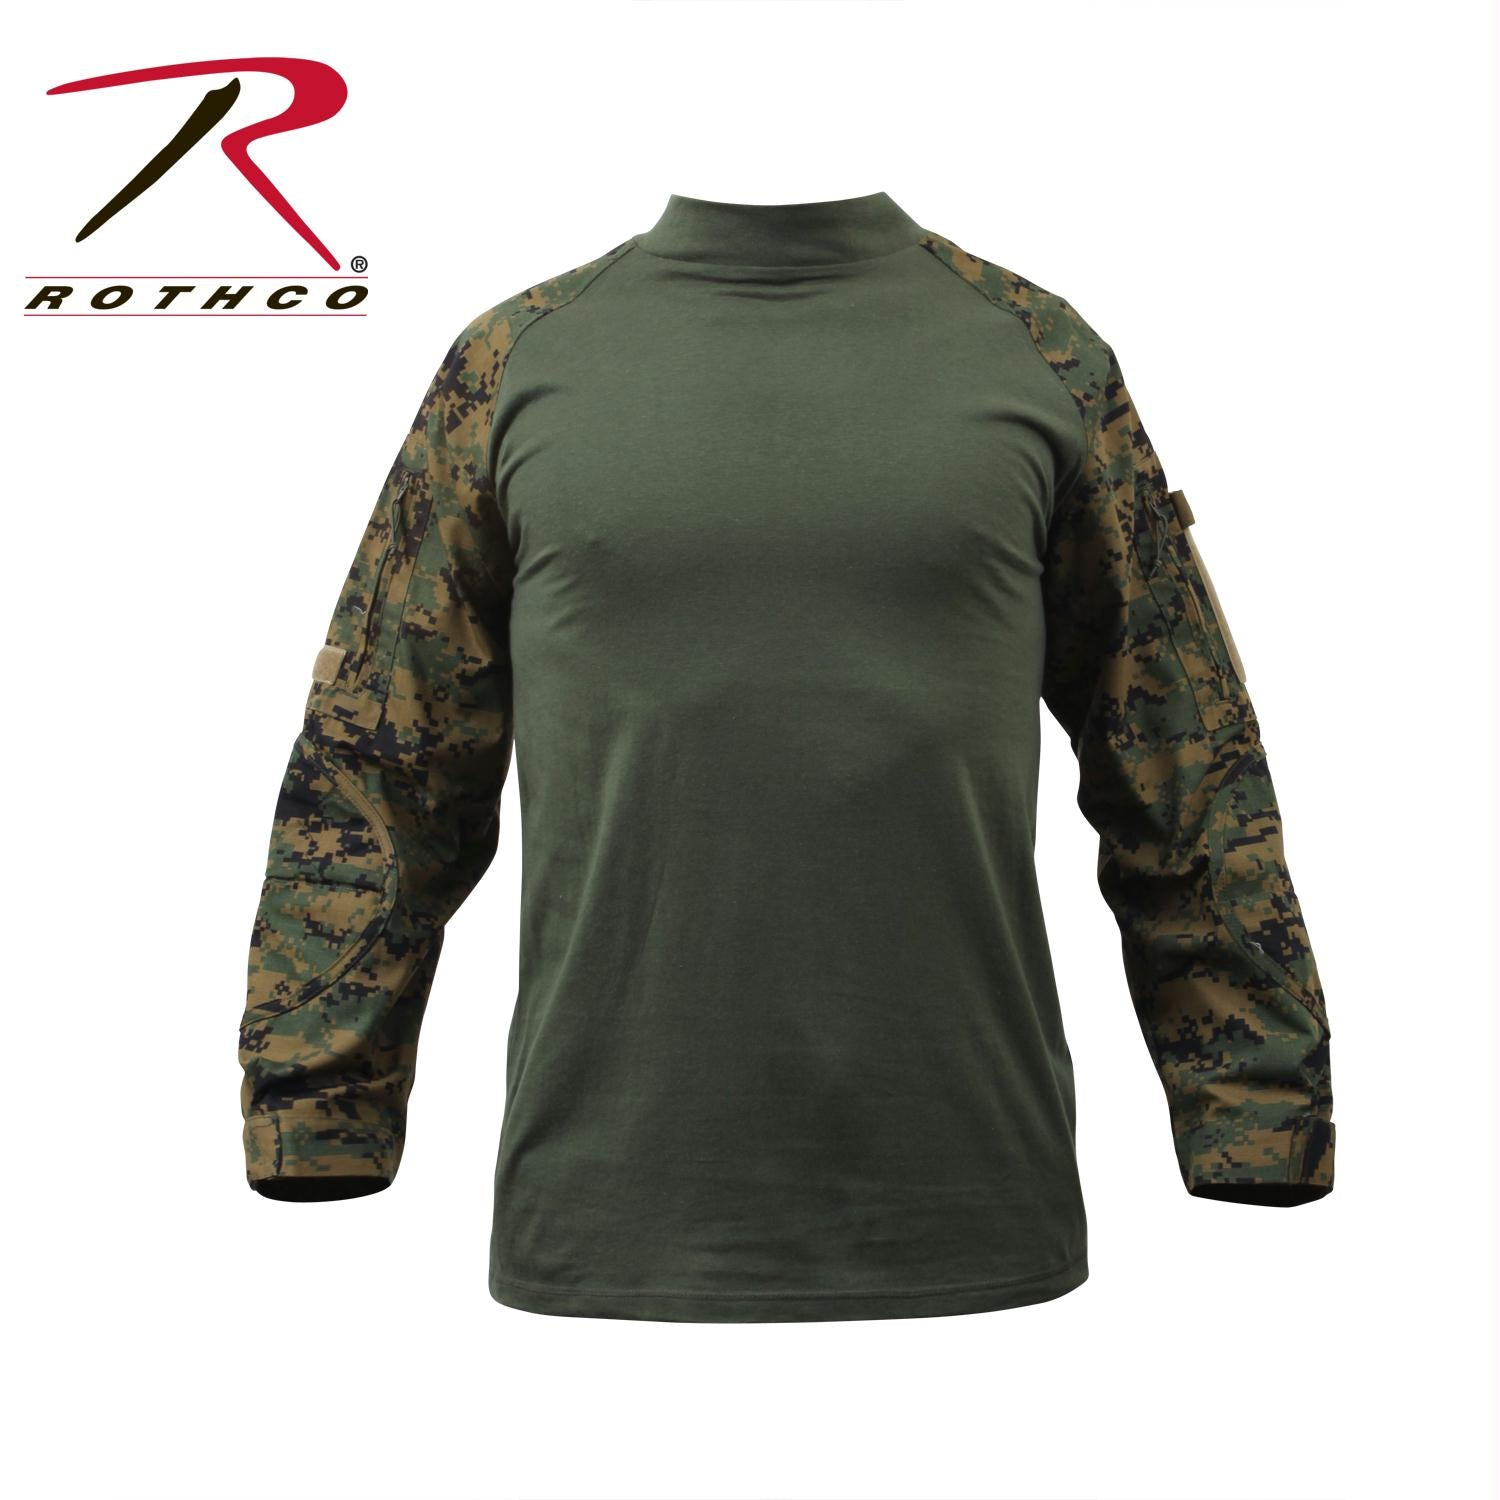 Rothco Military FR NYCO Combat Shirt - Woodland Digital Camo / 2XL